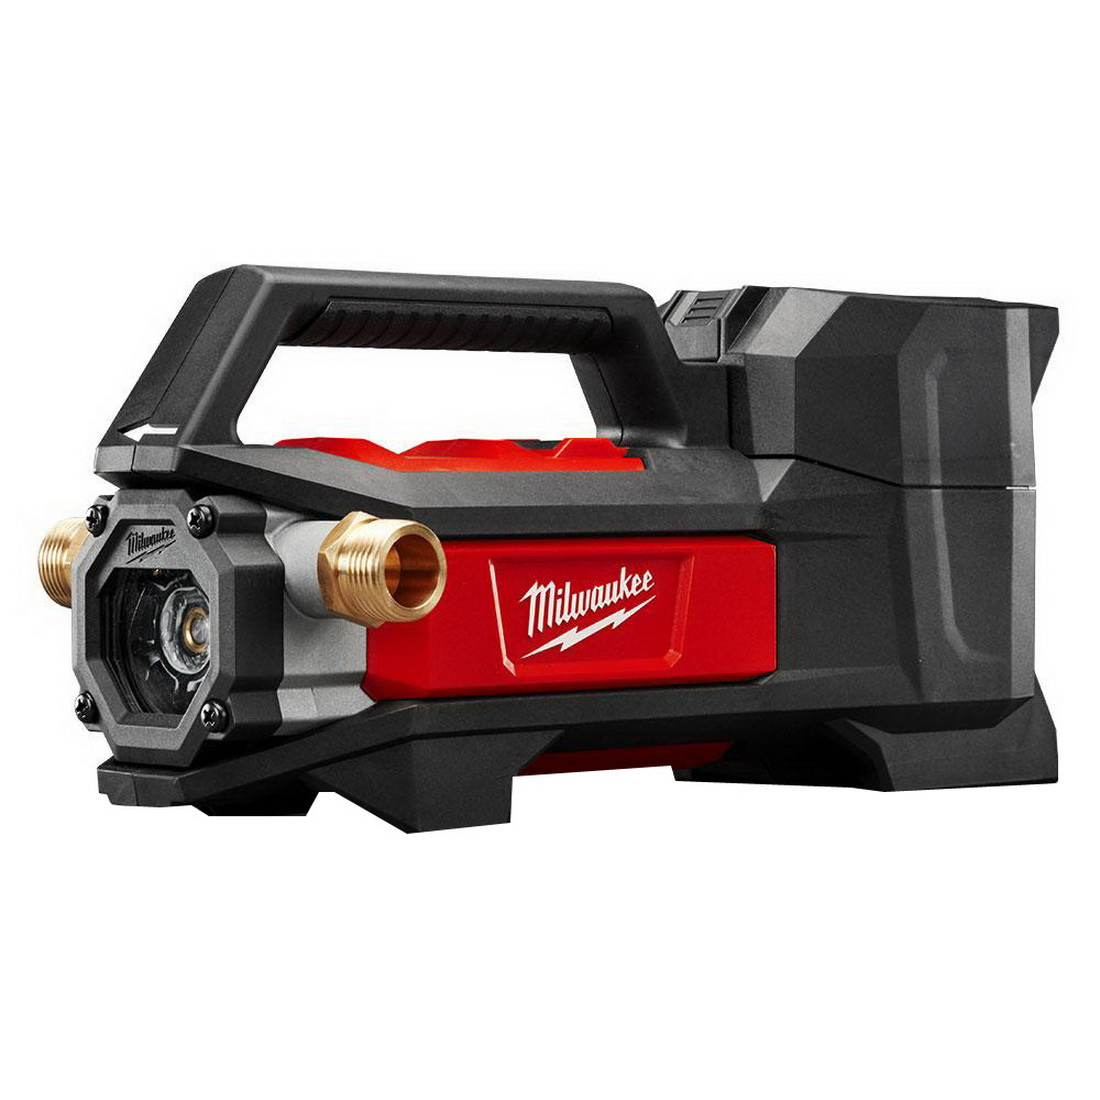 M18 Cordless Transfer Pump (Tool Only)